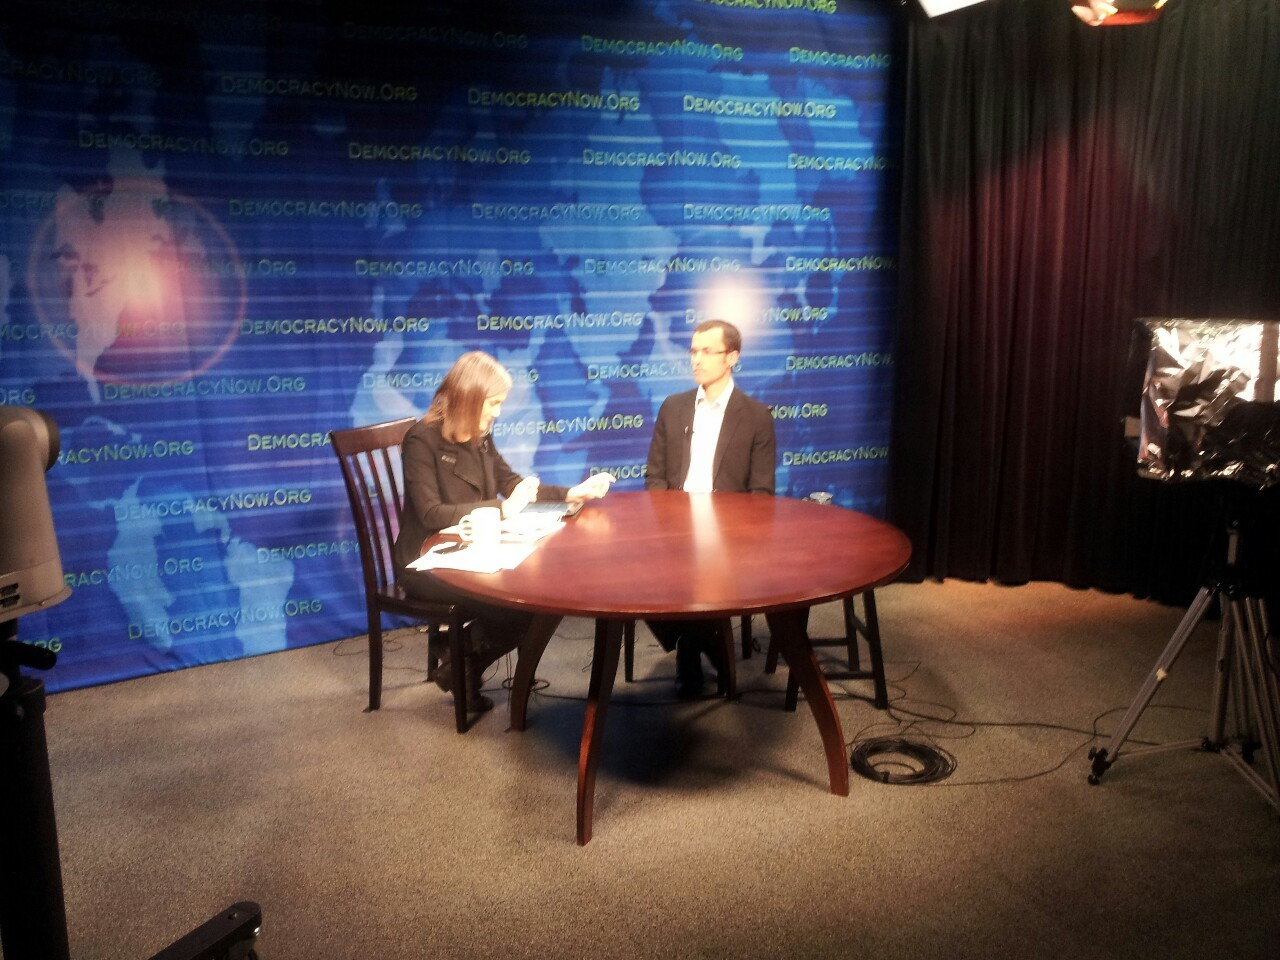 Shane Bauer in studio with Amy Goodman at the Community Media Center of Marin ( http://cmcm.tv ) .  Shane was one of the 3 hikers arrested near the border of Iran and imprisoned for 26 months.  He appeared on DN! for his first live broadcast appearance since being released from prison, to discuss his cover story in Mother Jones magazine, on the use of solitary confinement in the U.S.